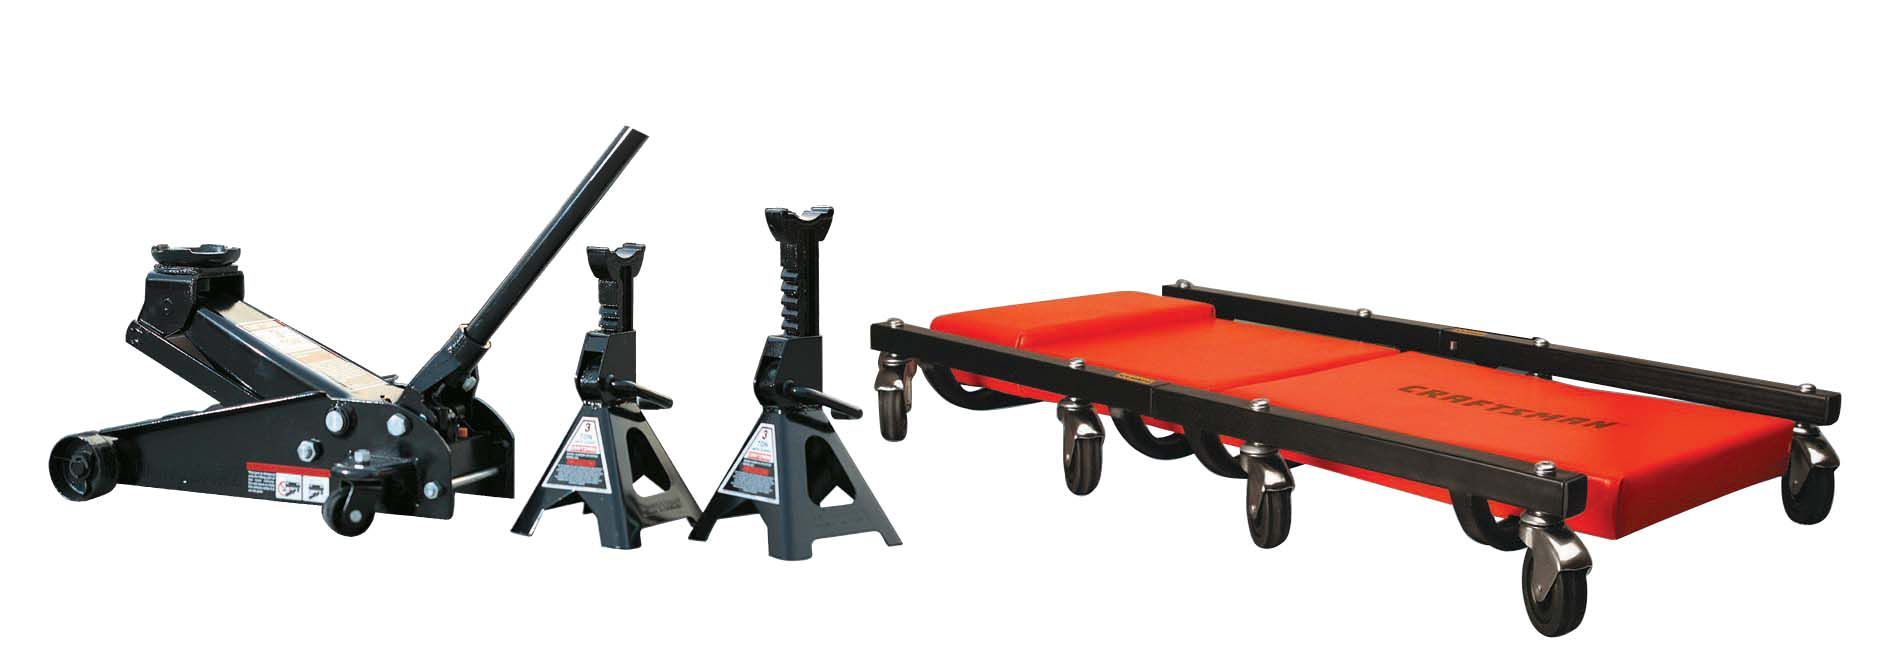 Craftsman 3 ton Floor Jack, Jack Stands and Creeper Set